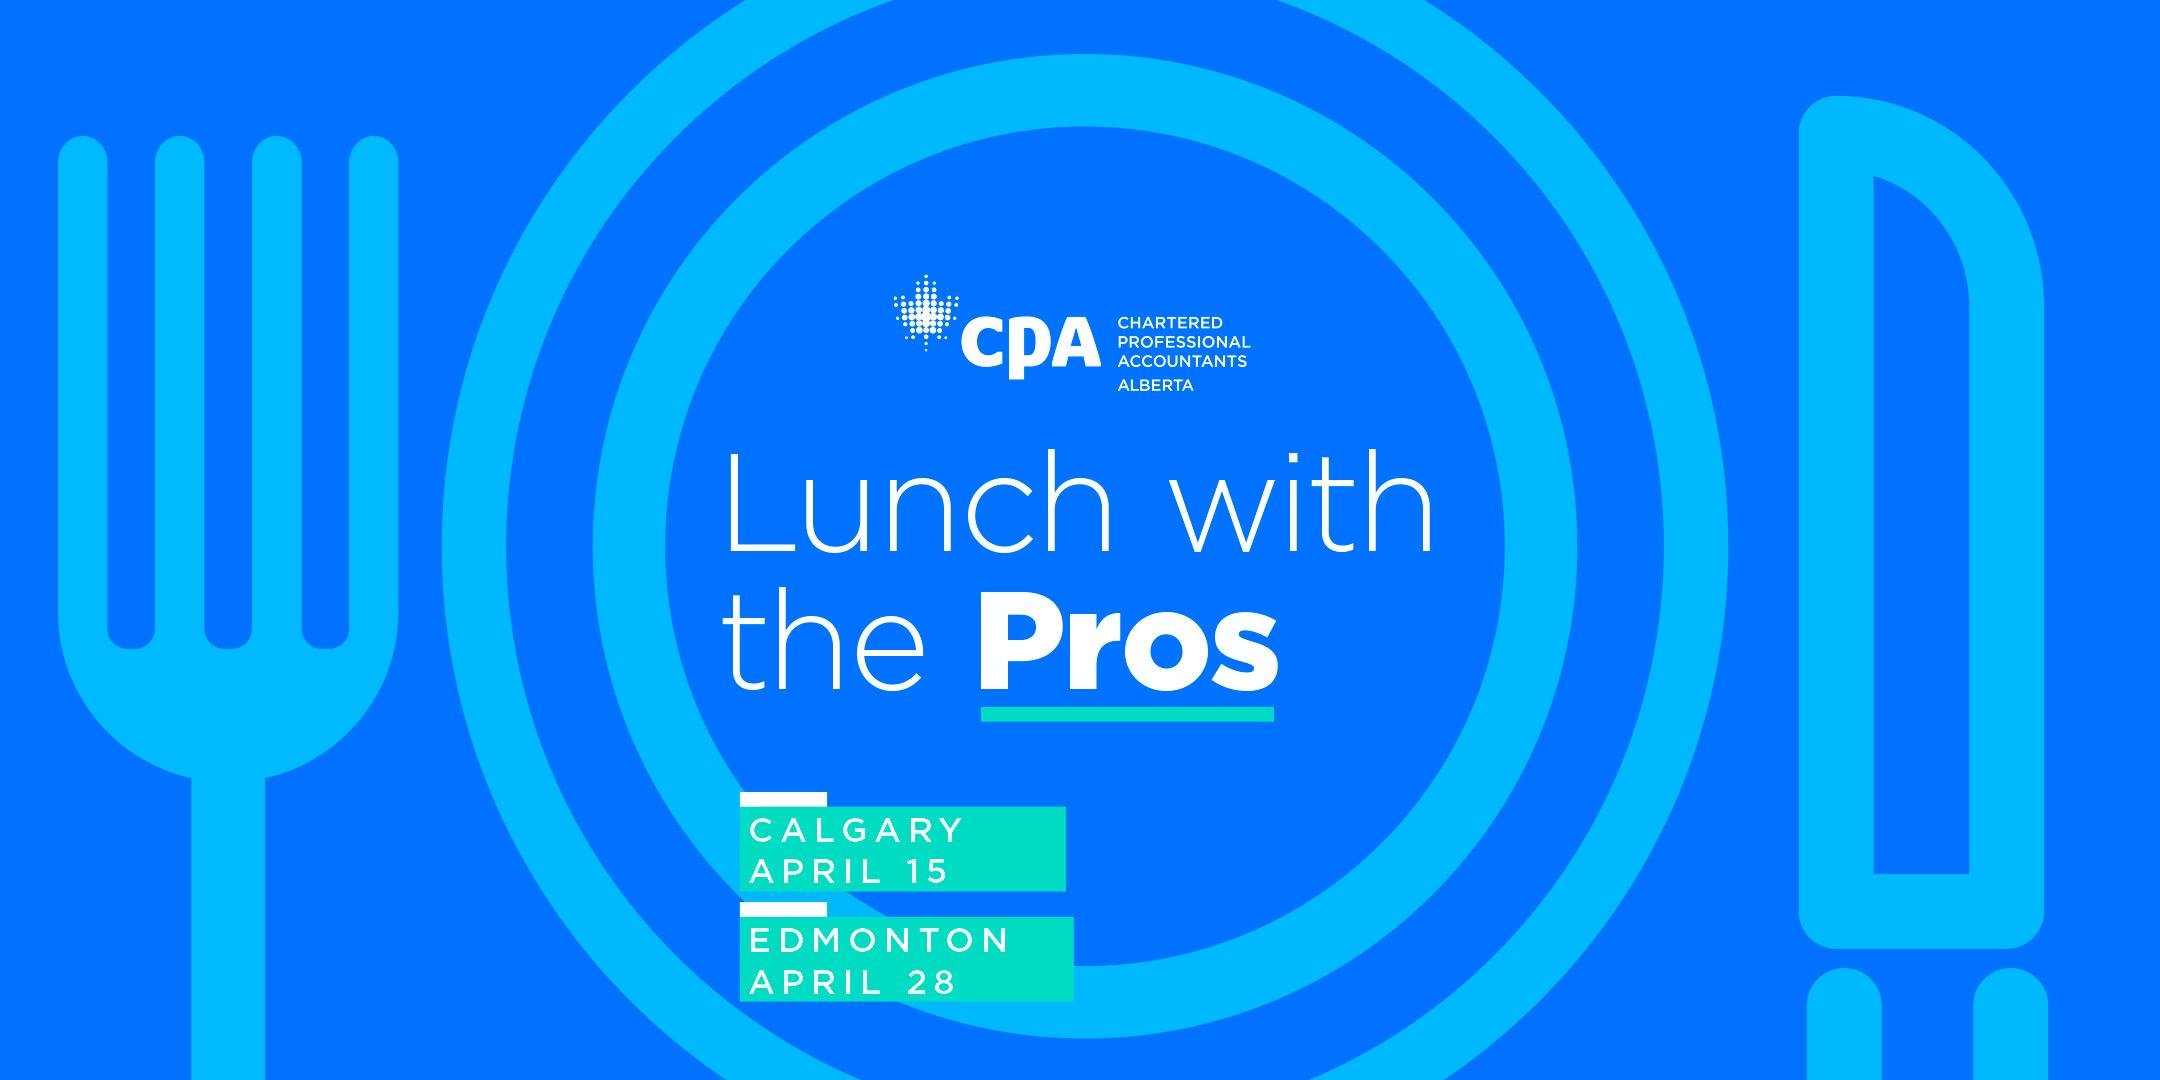 Lunch with the Pros Calgary